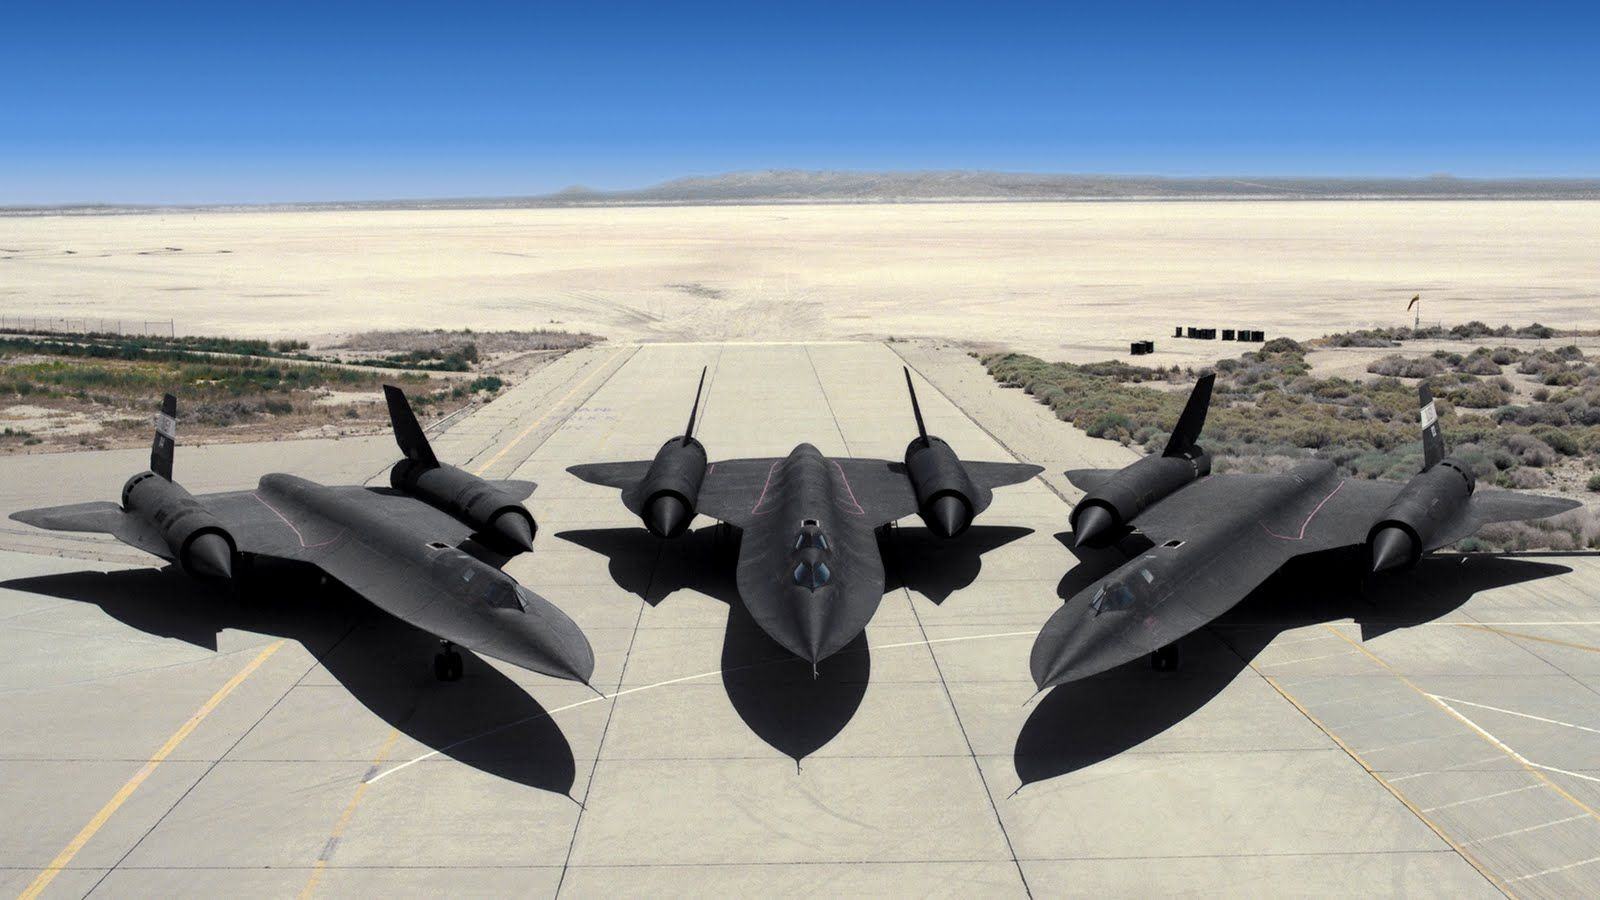 — Lockeed Martin SR71 Blackbird